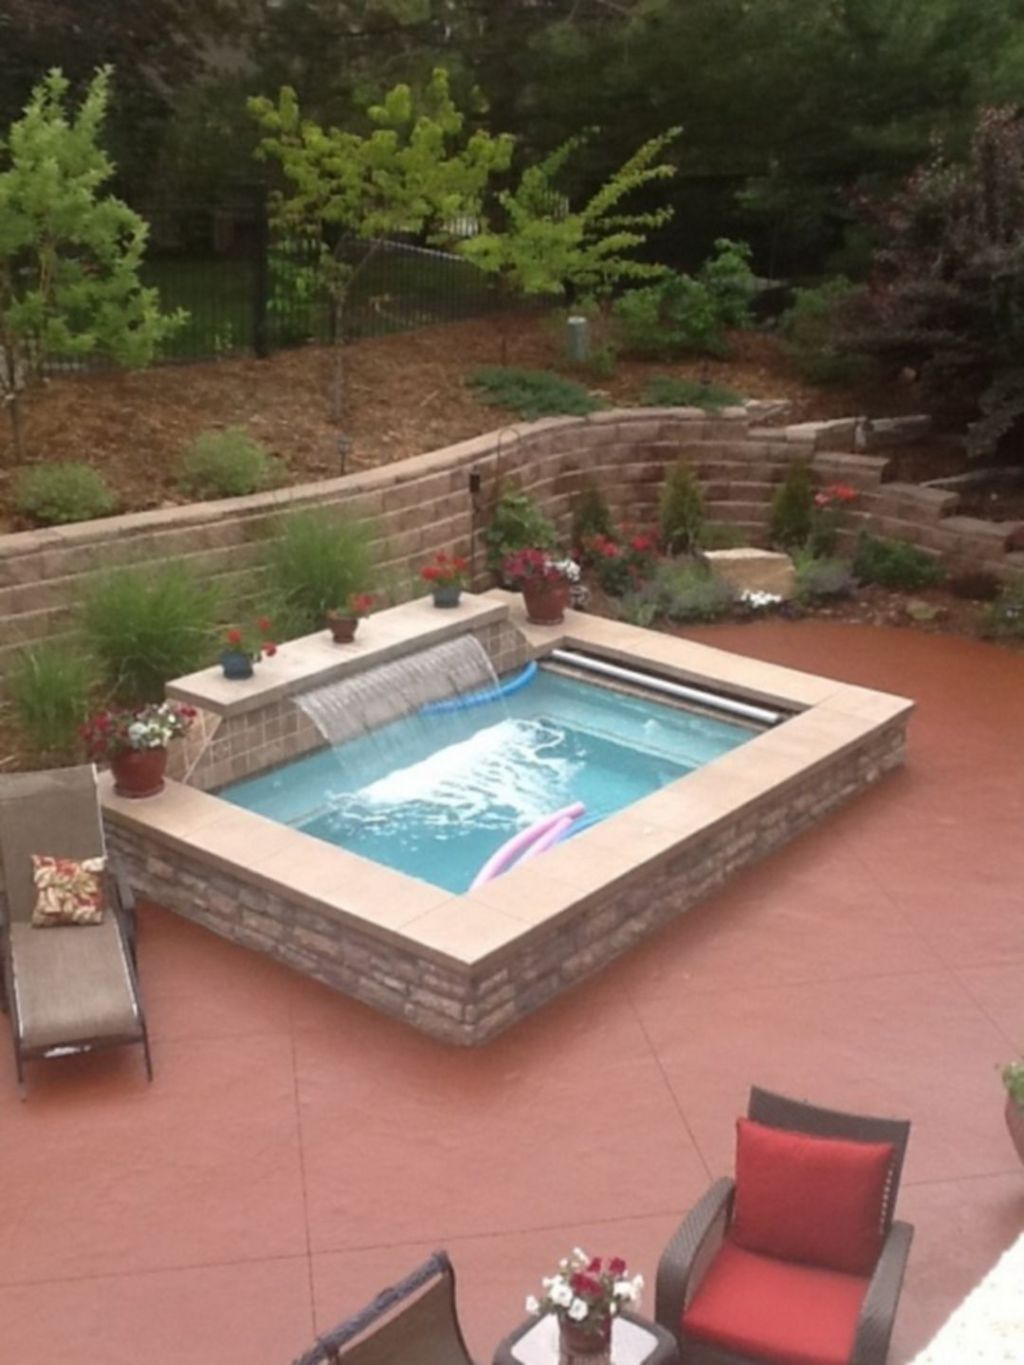 Marvelous Small Pool Design Ideas 1069 Marvelous